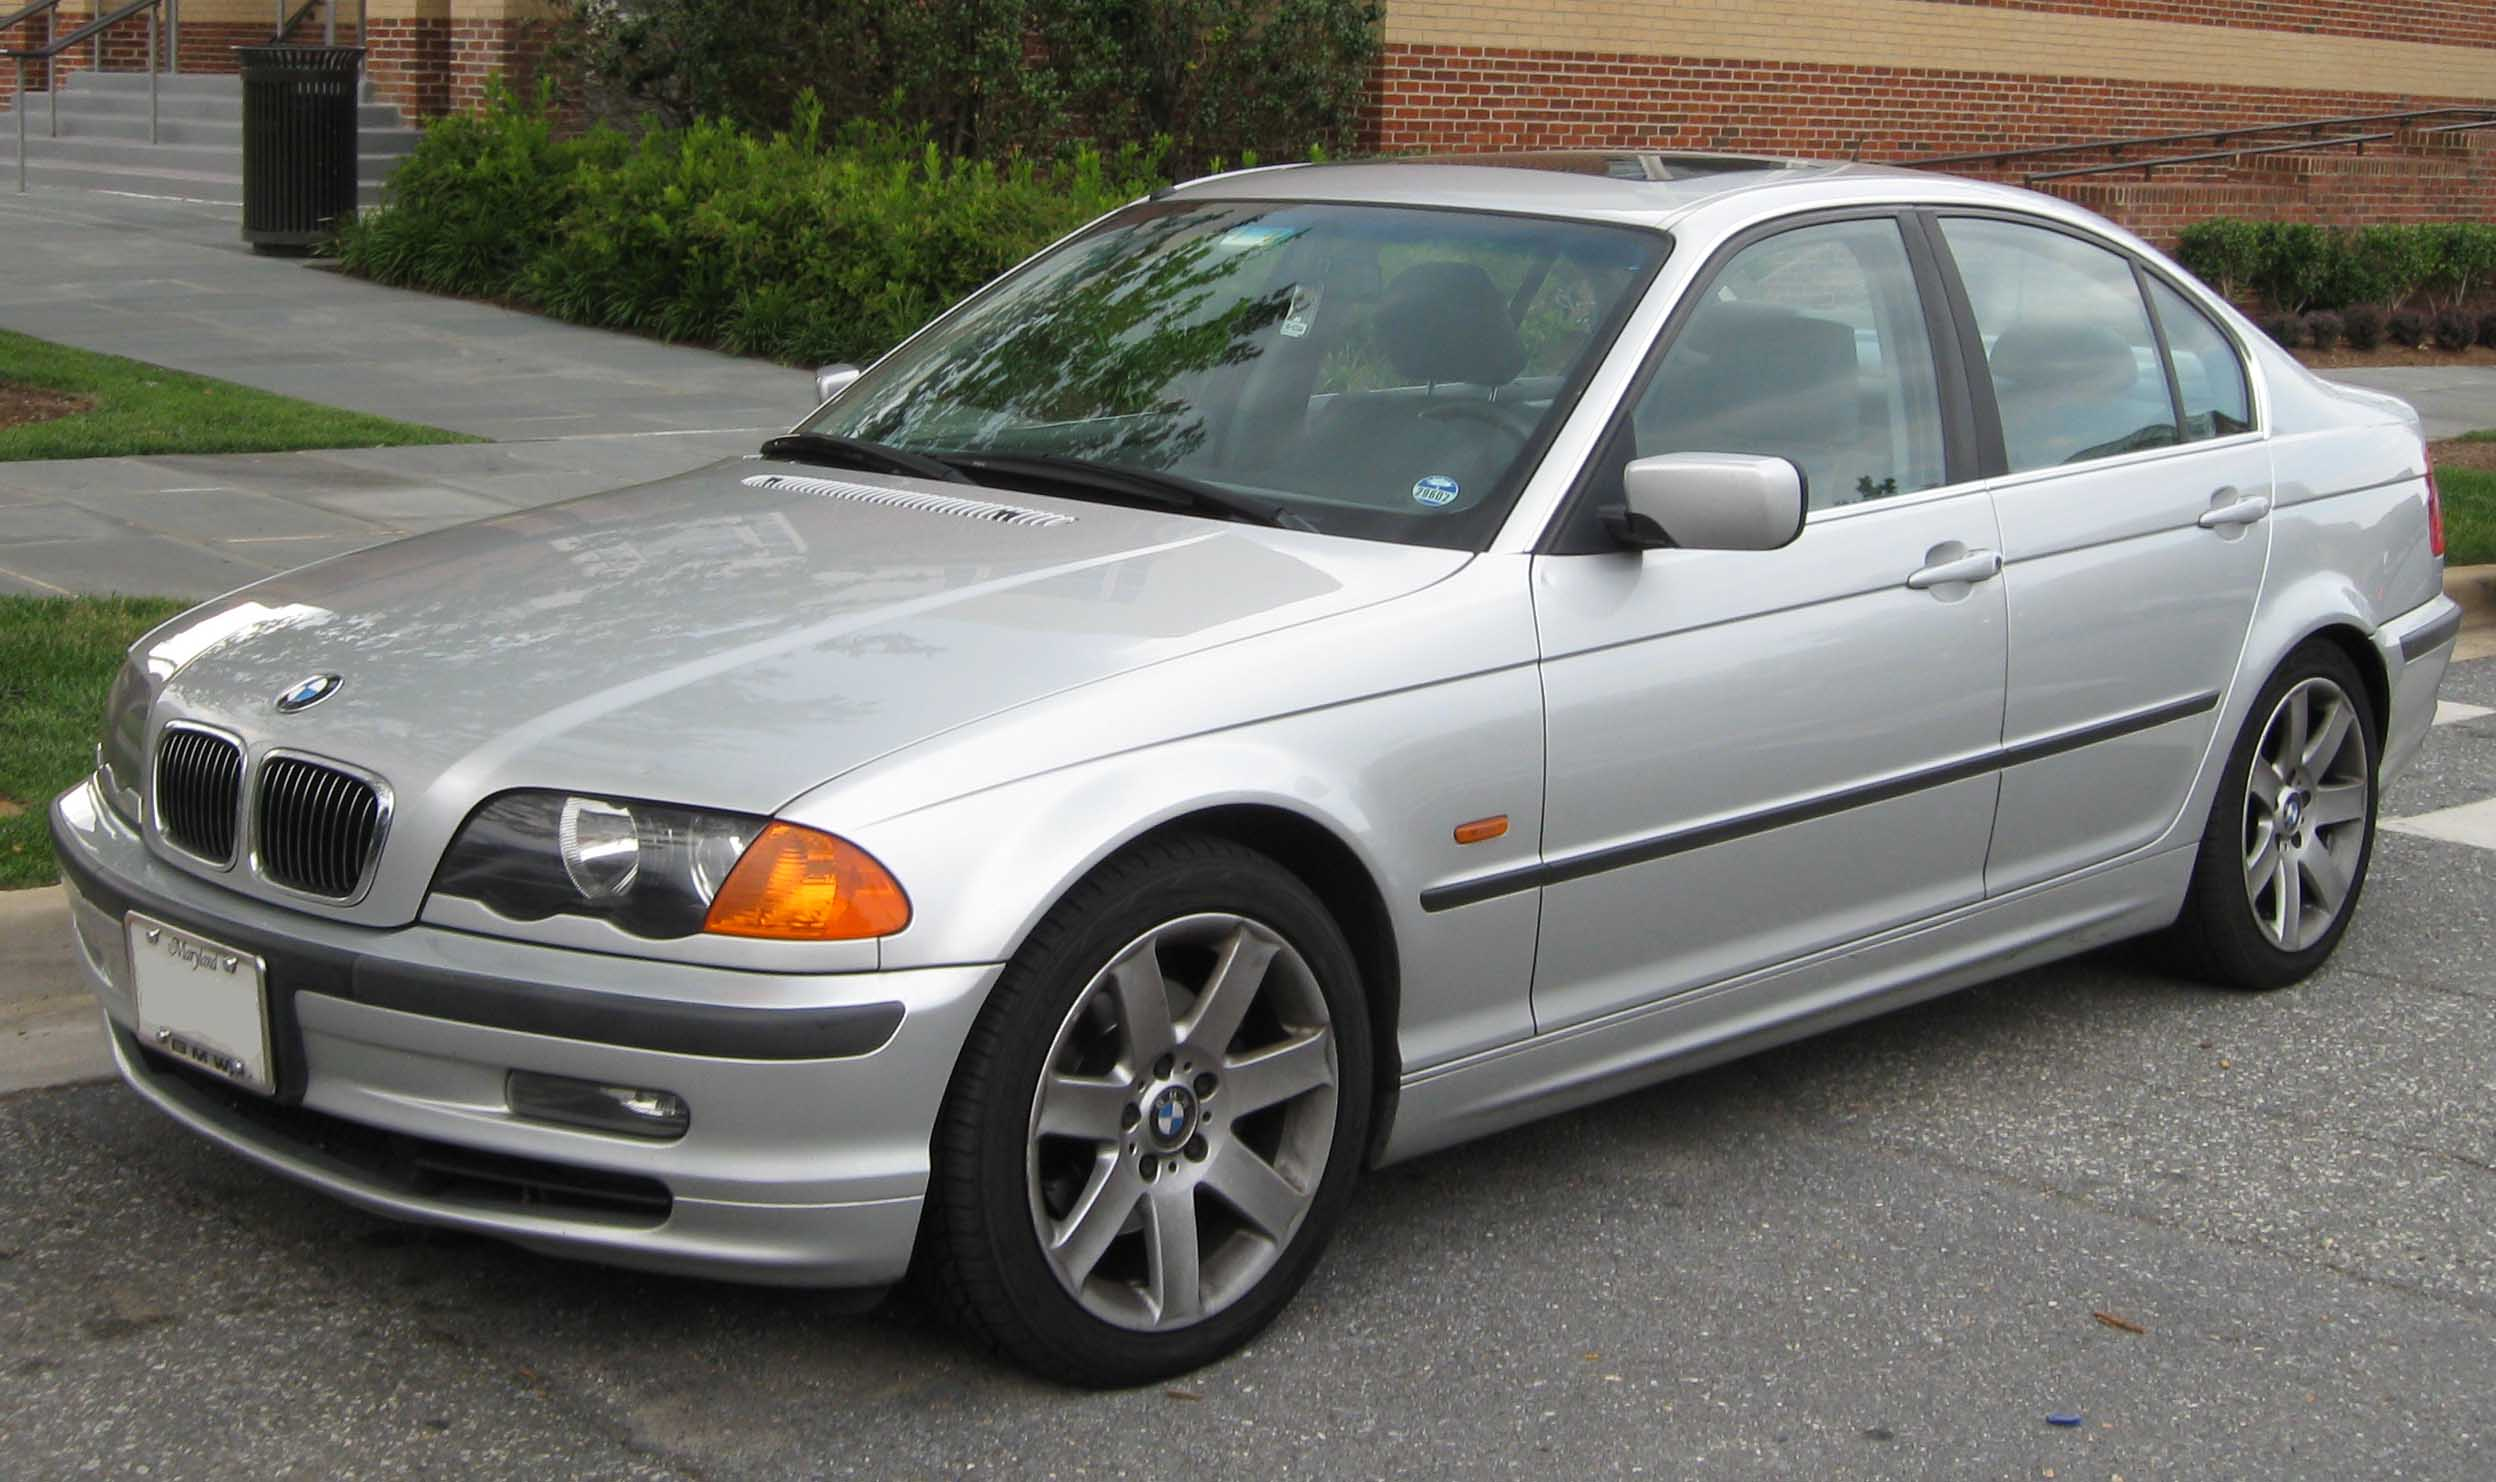 bmw 3 series (e46) - wikipedia